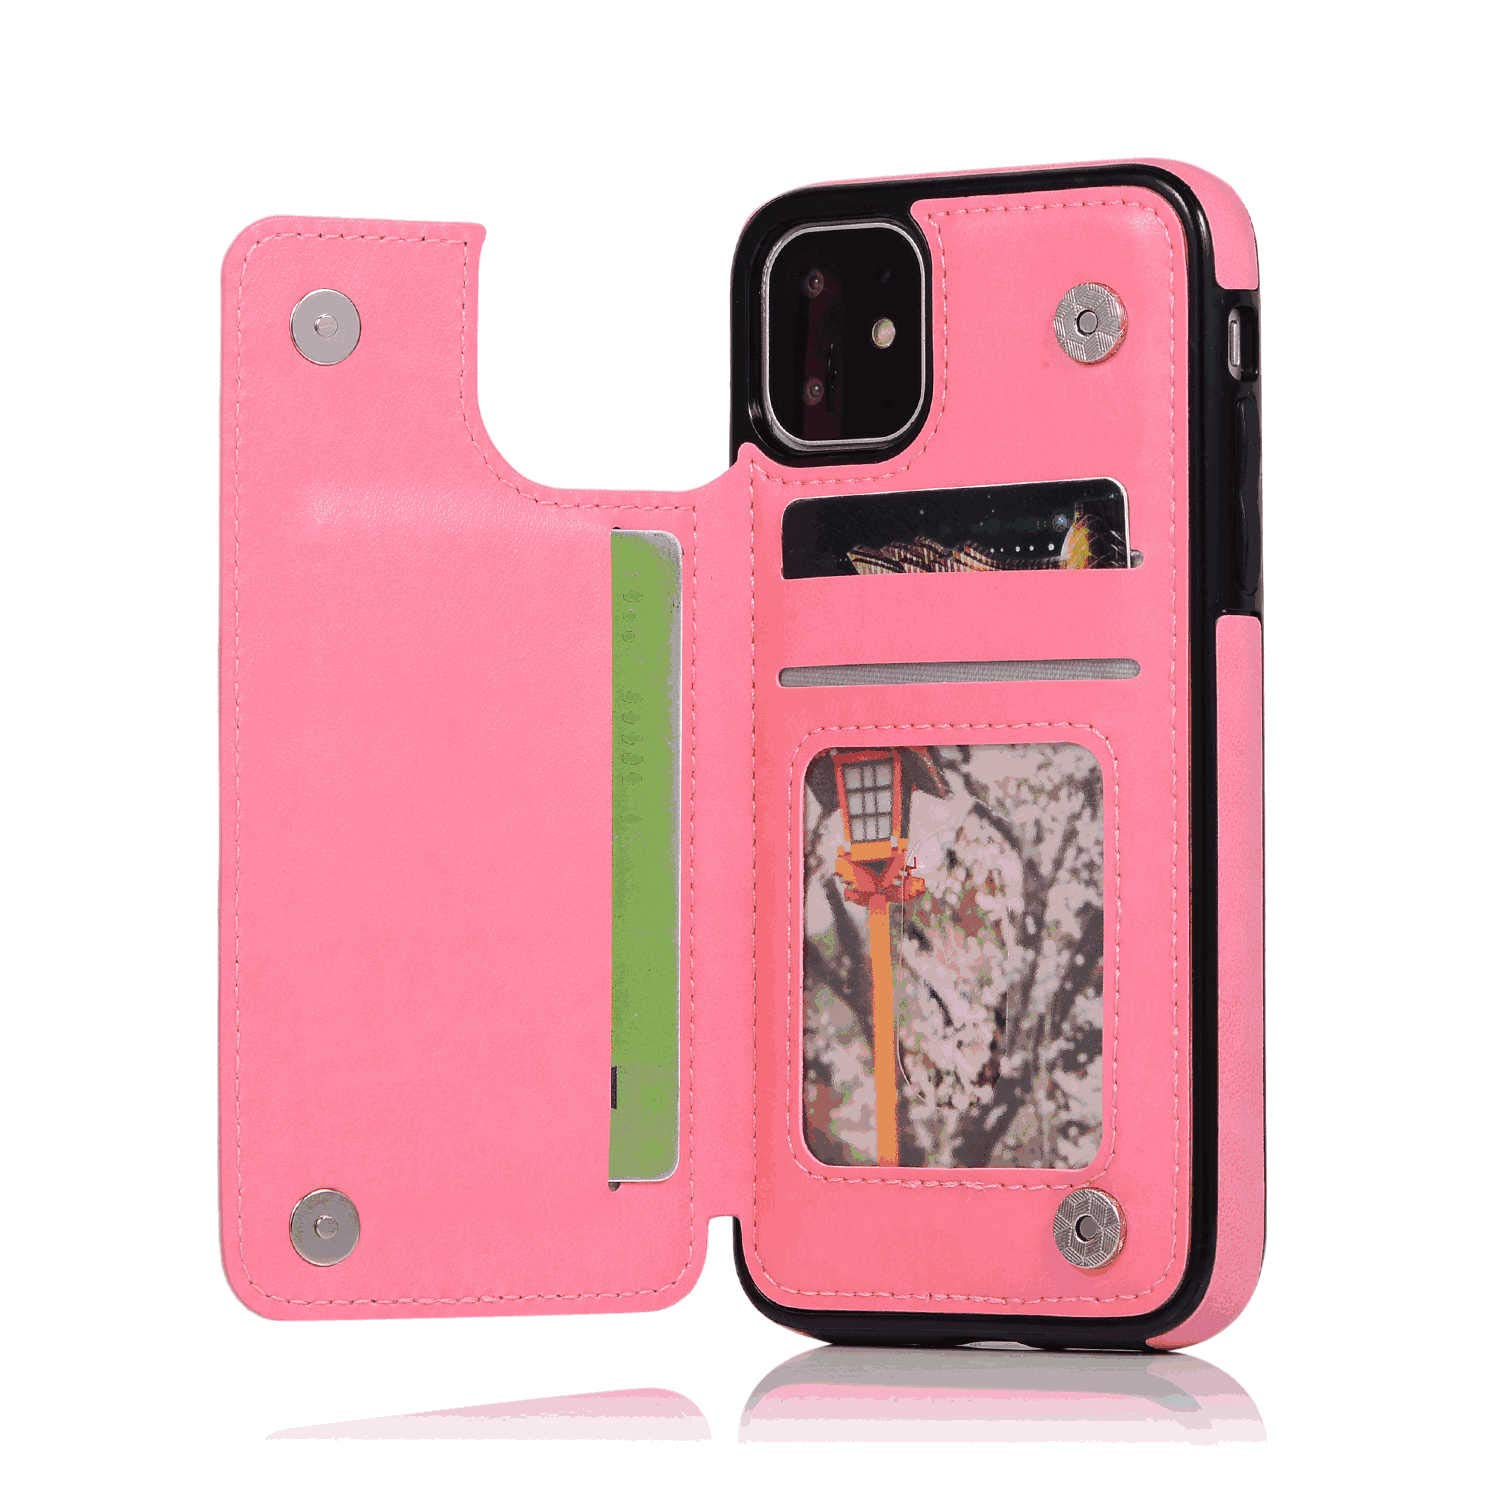 Cover for Leather Wallet Cover Card Holders Kickstand Extra-Protective Business Flip Cover iPhone 8 Flip Case